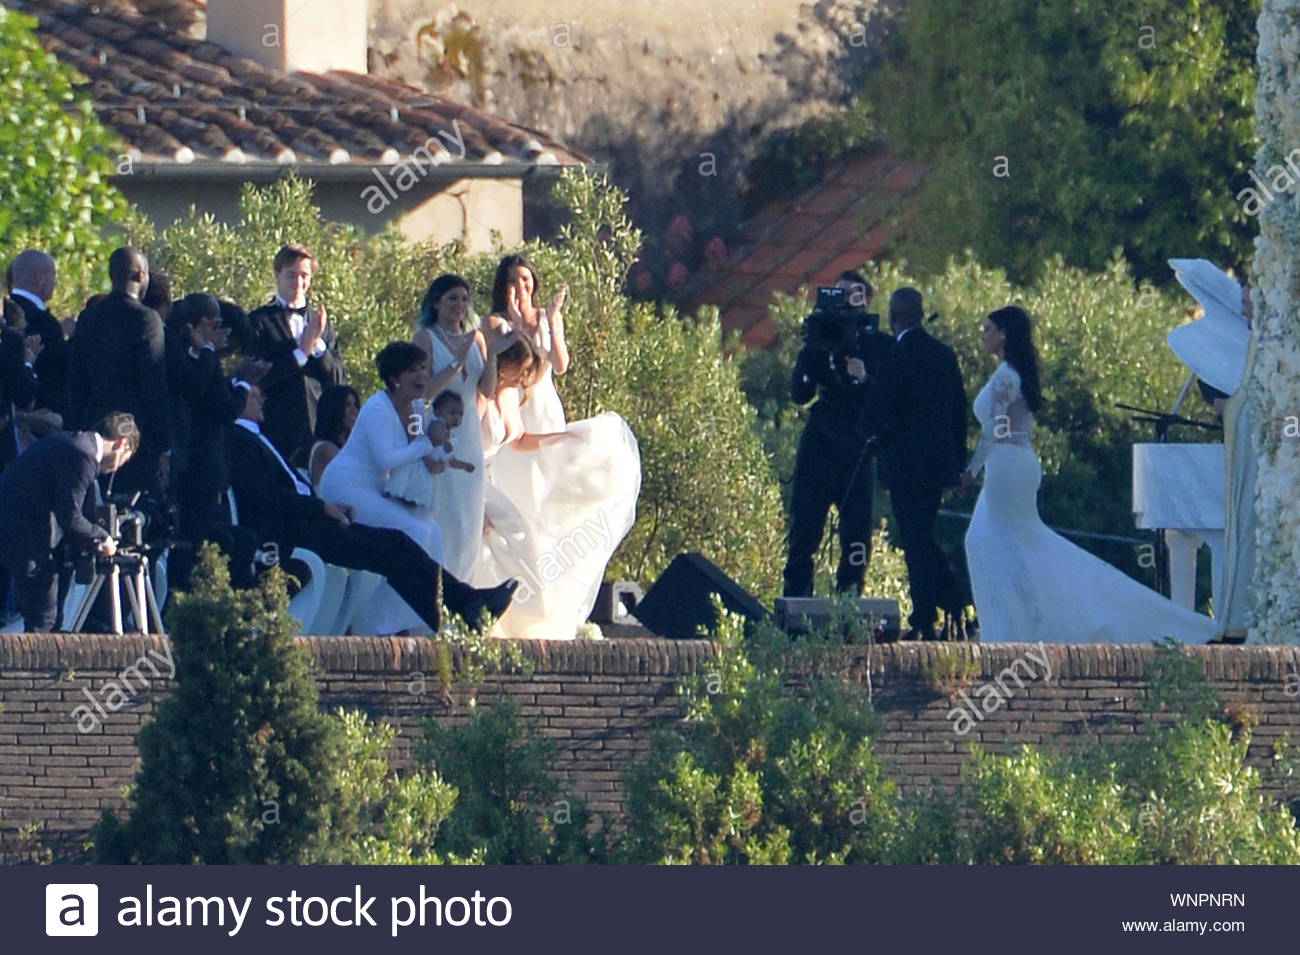 Florence Italy Shot On May 24 2014 Kim Kardashian And Kanye West Tied The Knot Today In A Lavish Wedding At Florence S Forte Di Belvedere The Beautiful Bride Was Walked